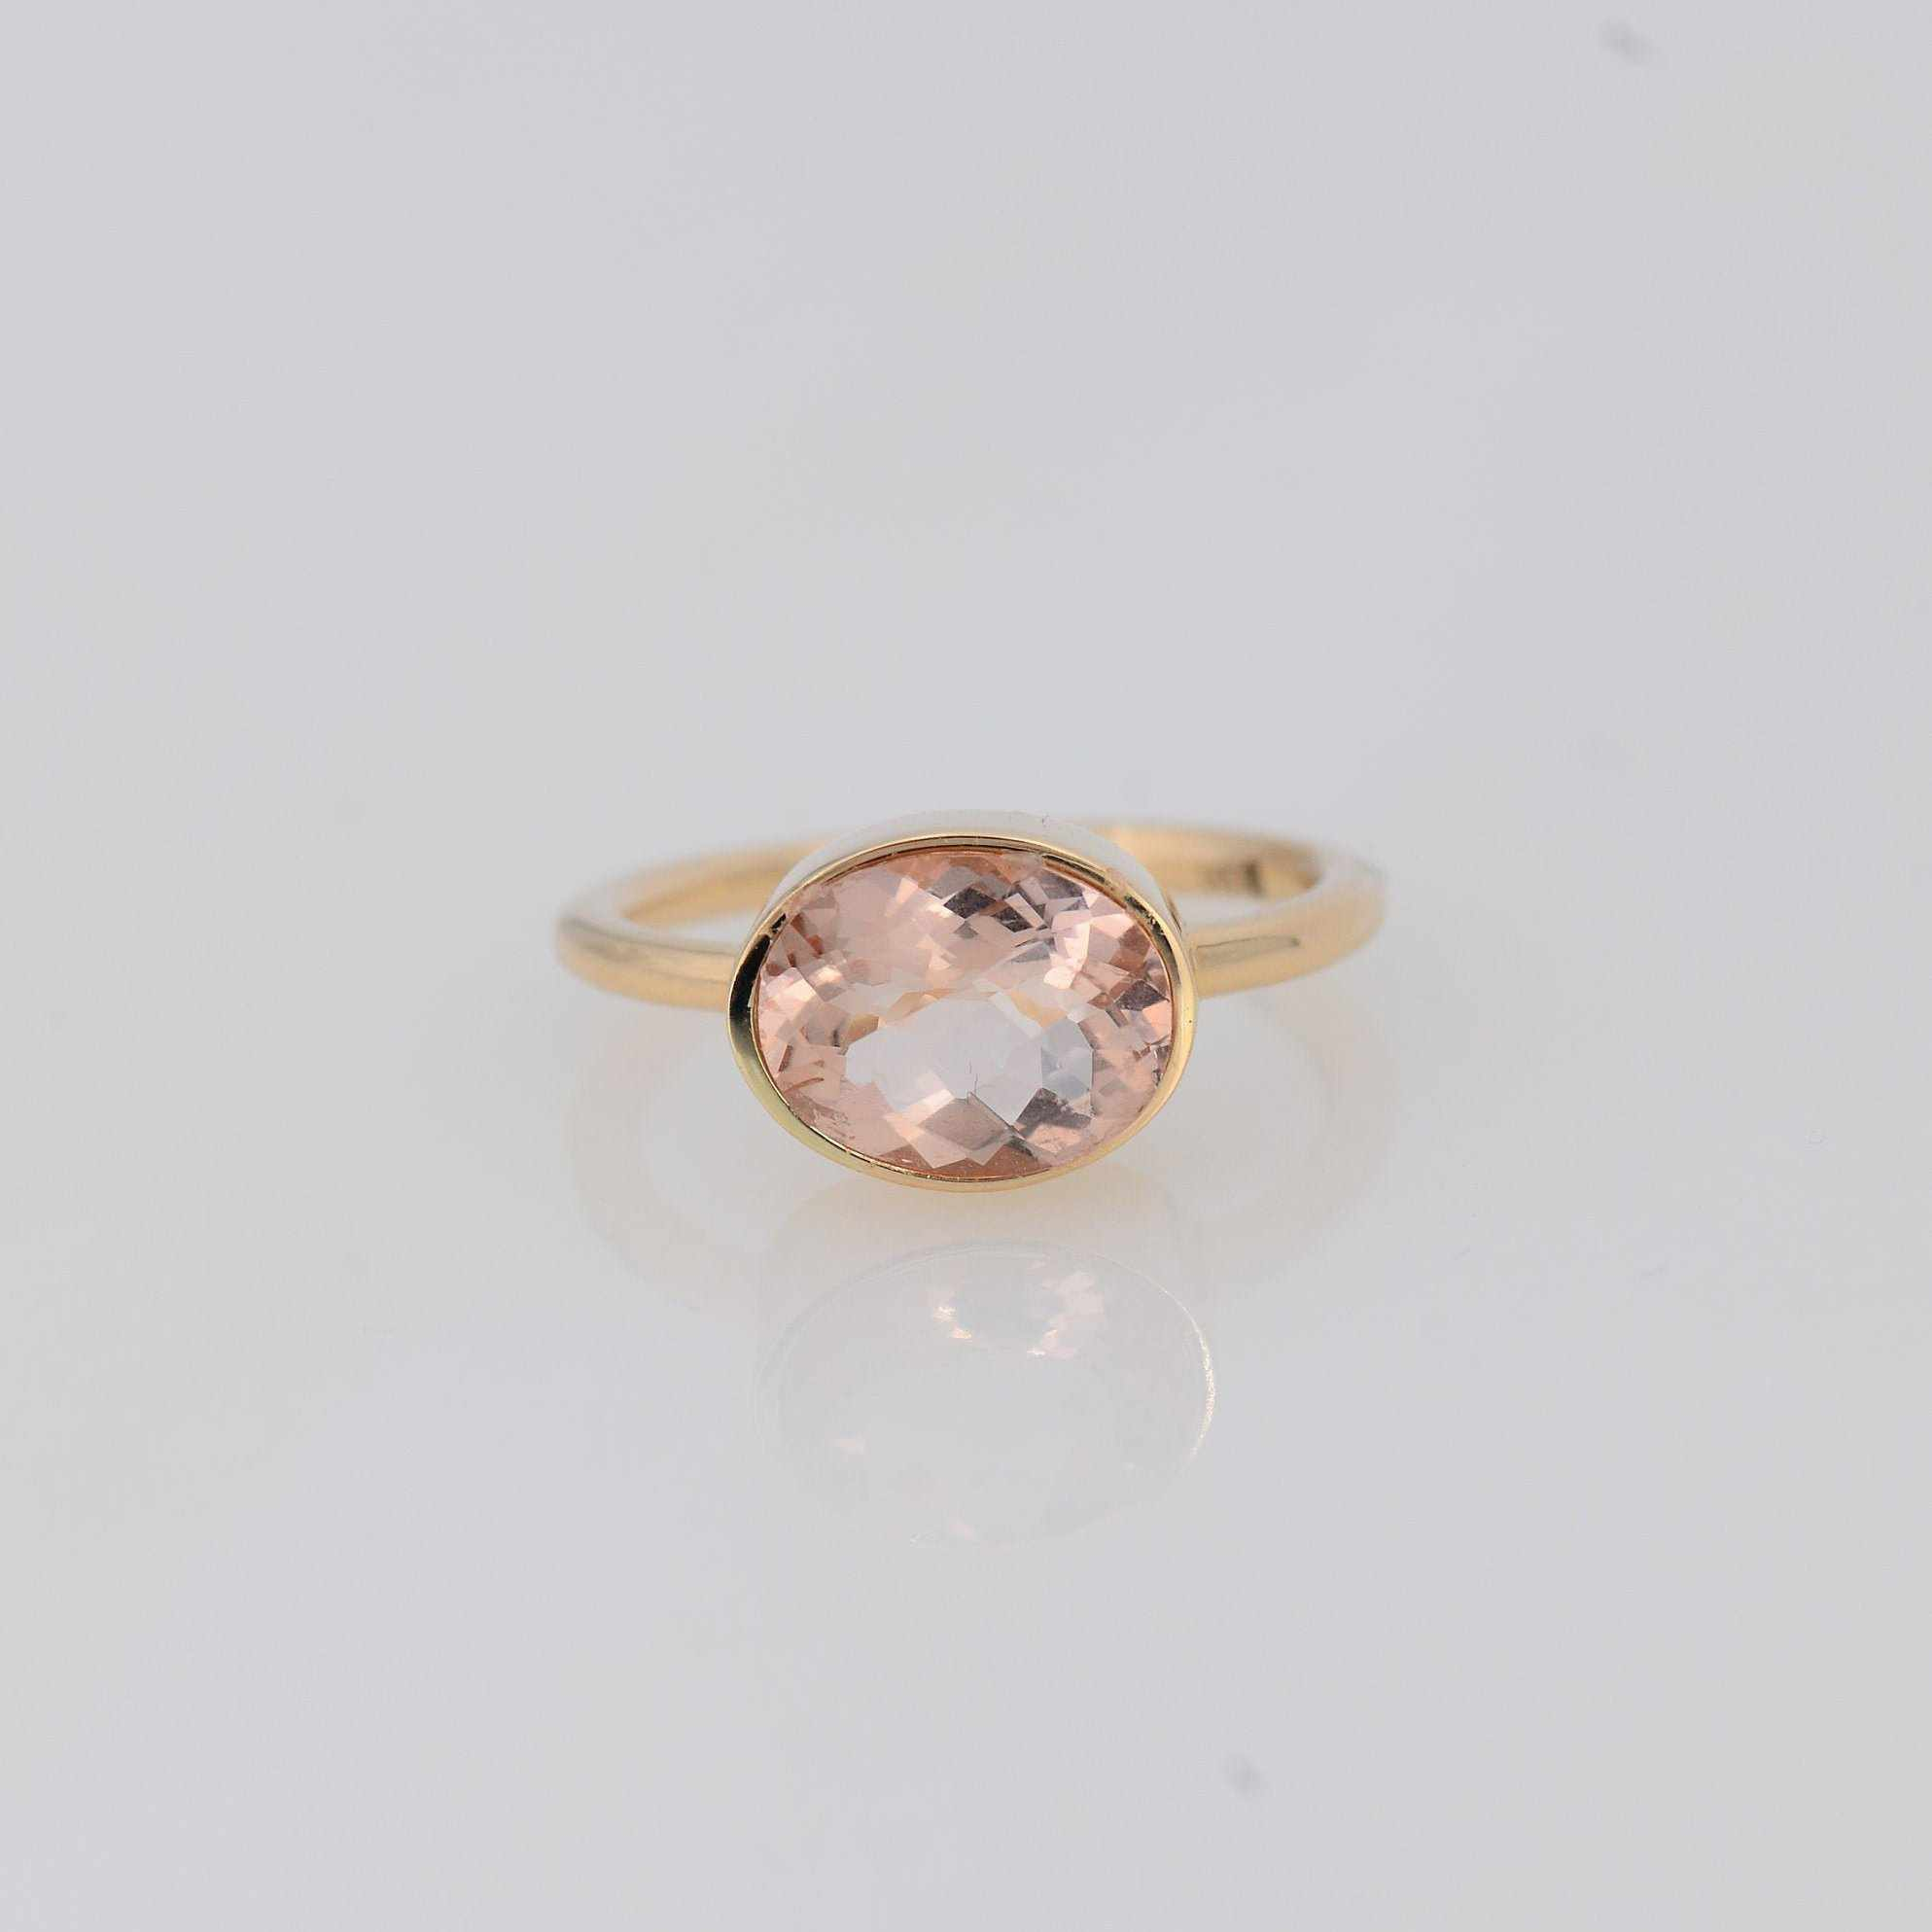 14k Gold Morganite ring, Genuine Gemstone ring, Blush pink ring, Oval Morganite ring, Mother's ring, Gold ring, Simple Solitaire Wedding